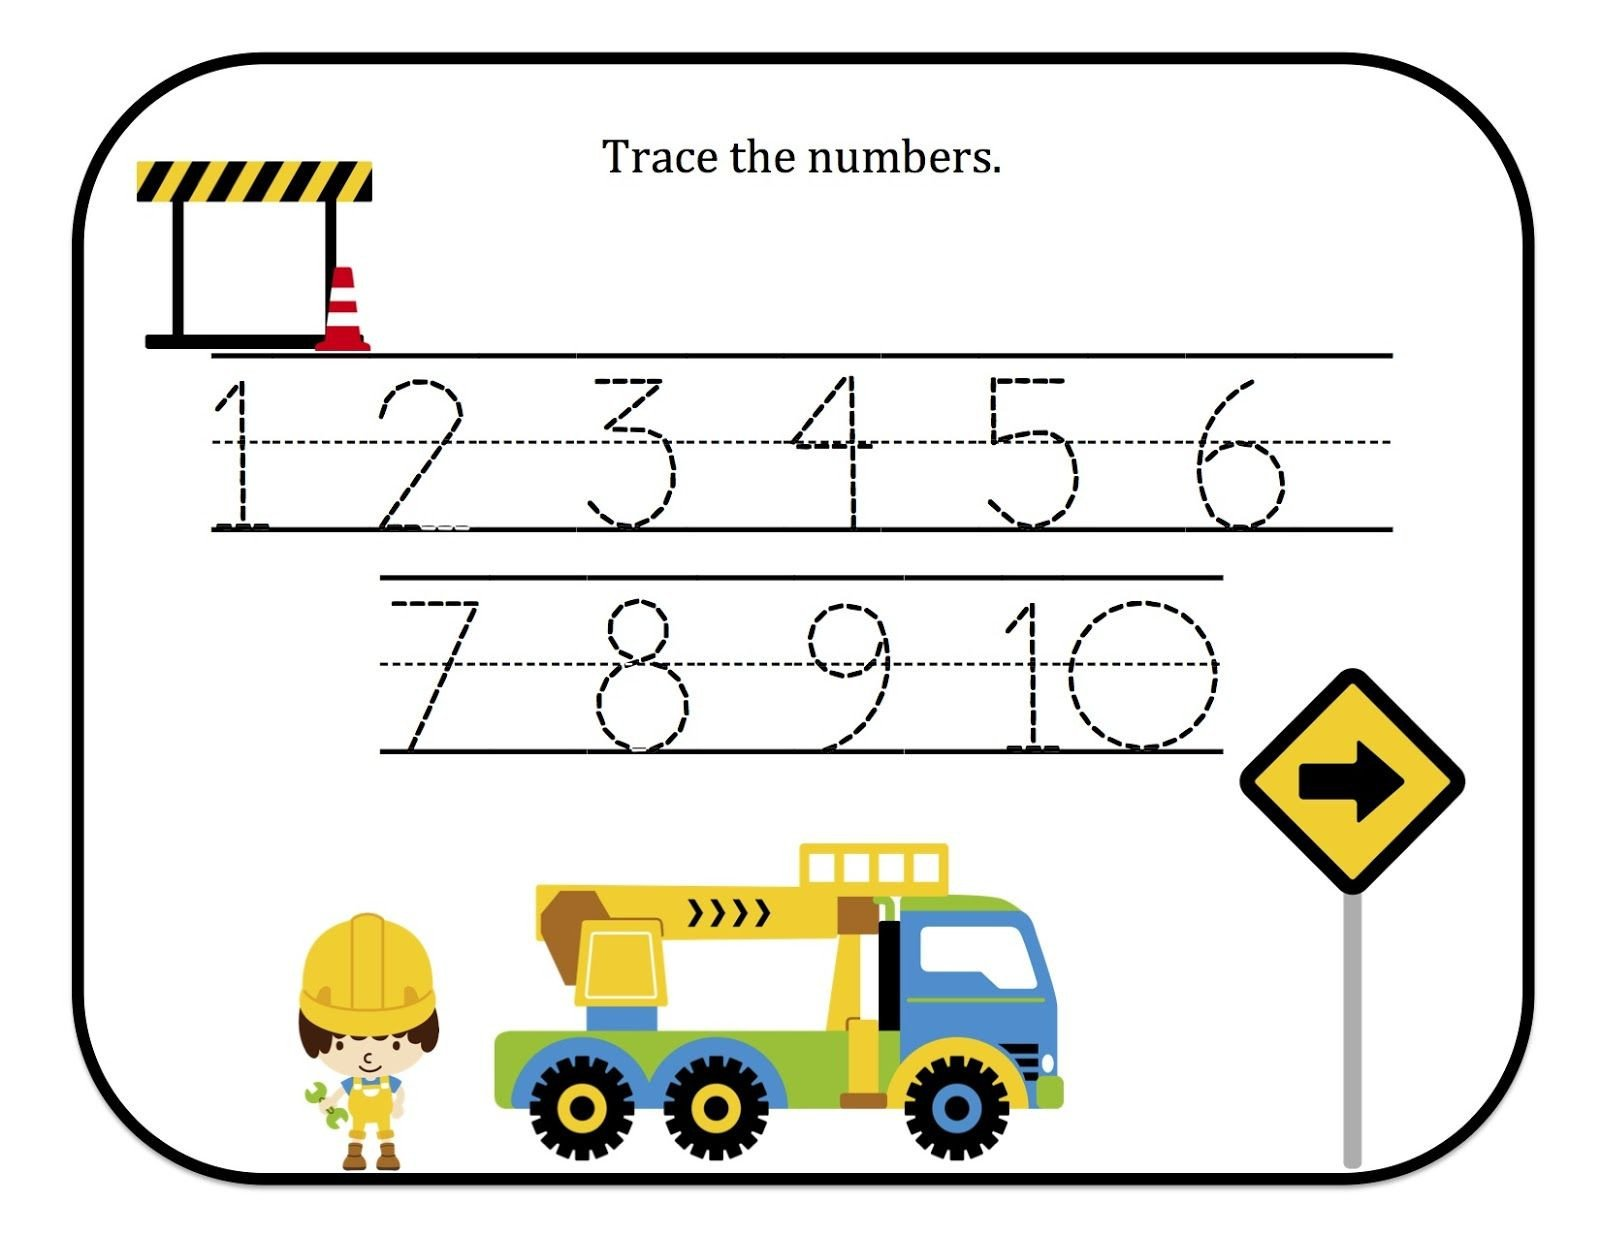 Construction Math Worksheets Construction Trace the Num 1600—1236